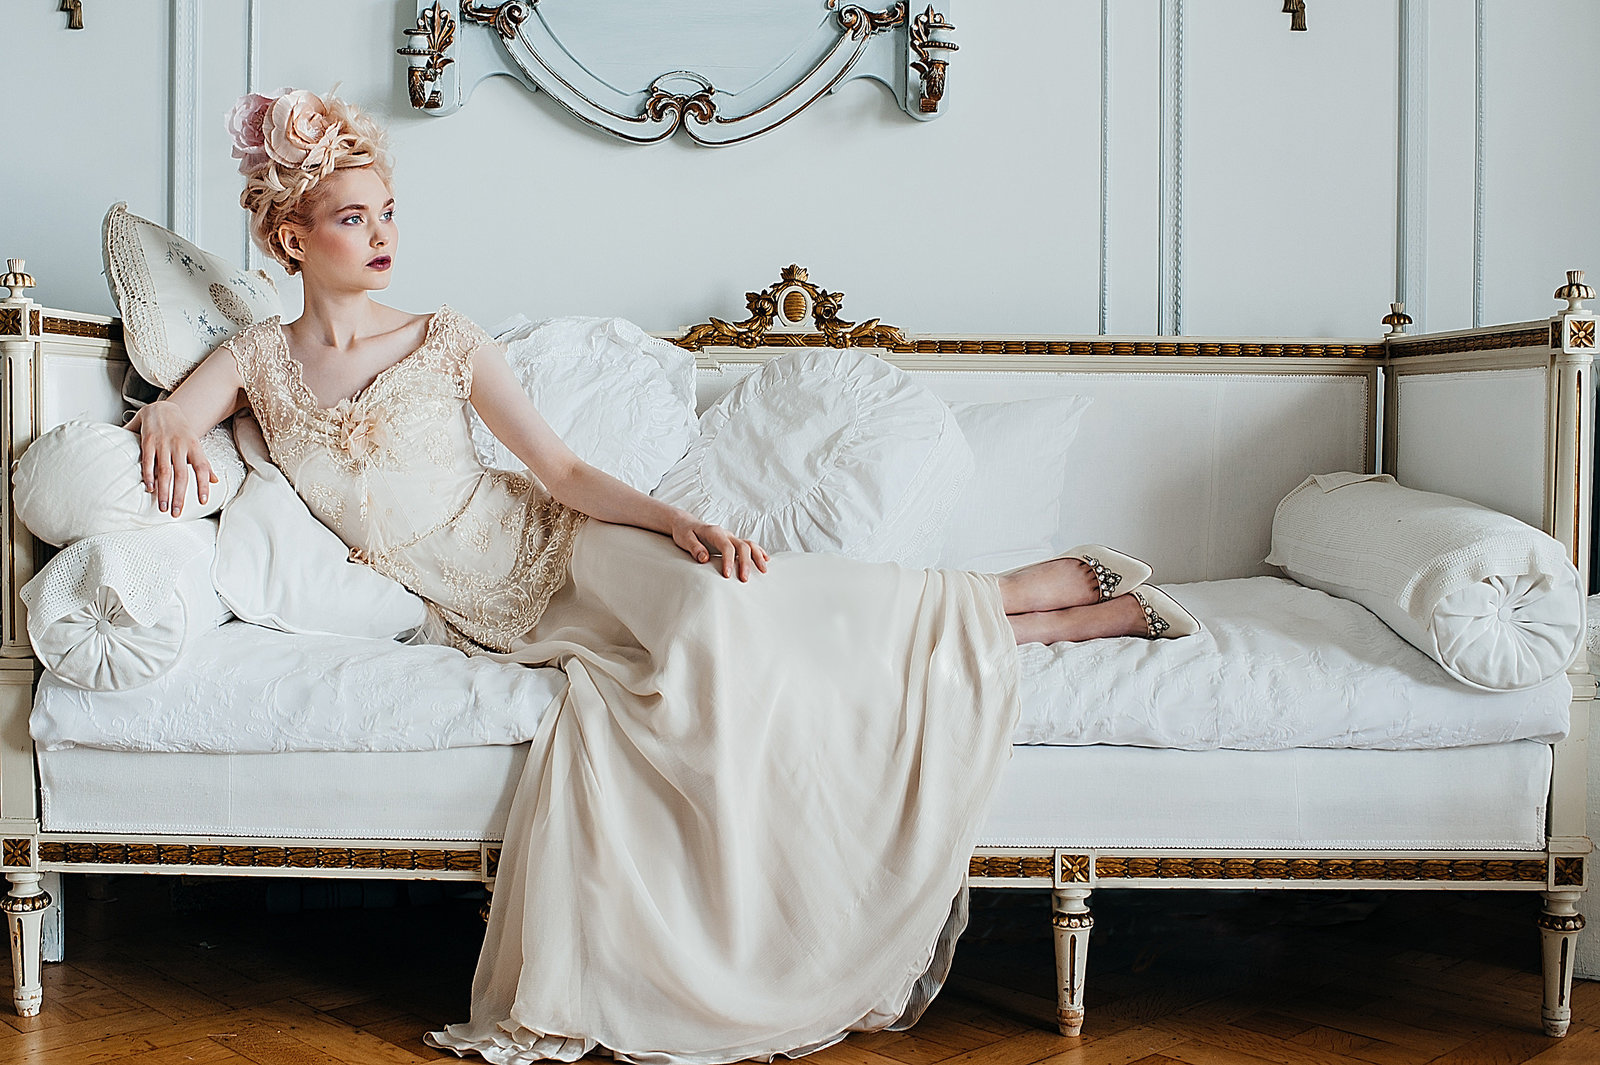 LilyElsie_beaded _lace_edwardian_champagne_wedding_dress_JoanneFlemingDesign (2)